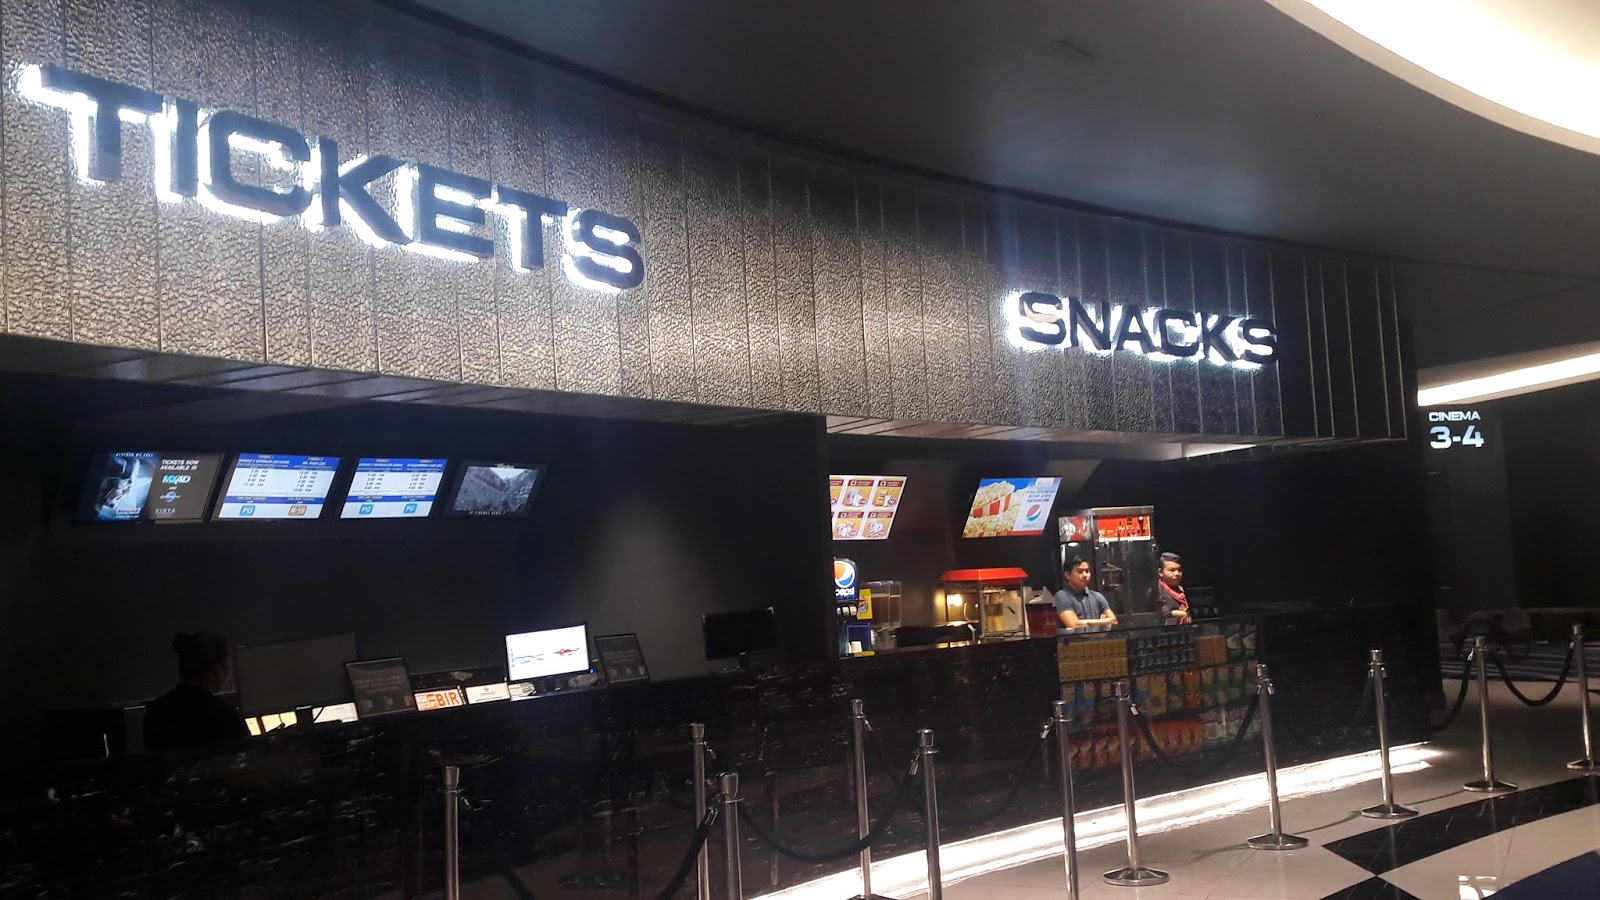 Cinema Center vista cinemas opens and only mx4d motion efx theater in the country at evia lifestyle